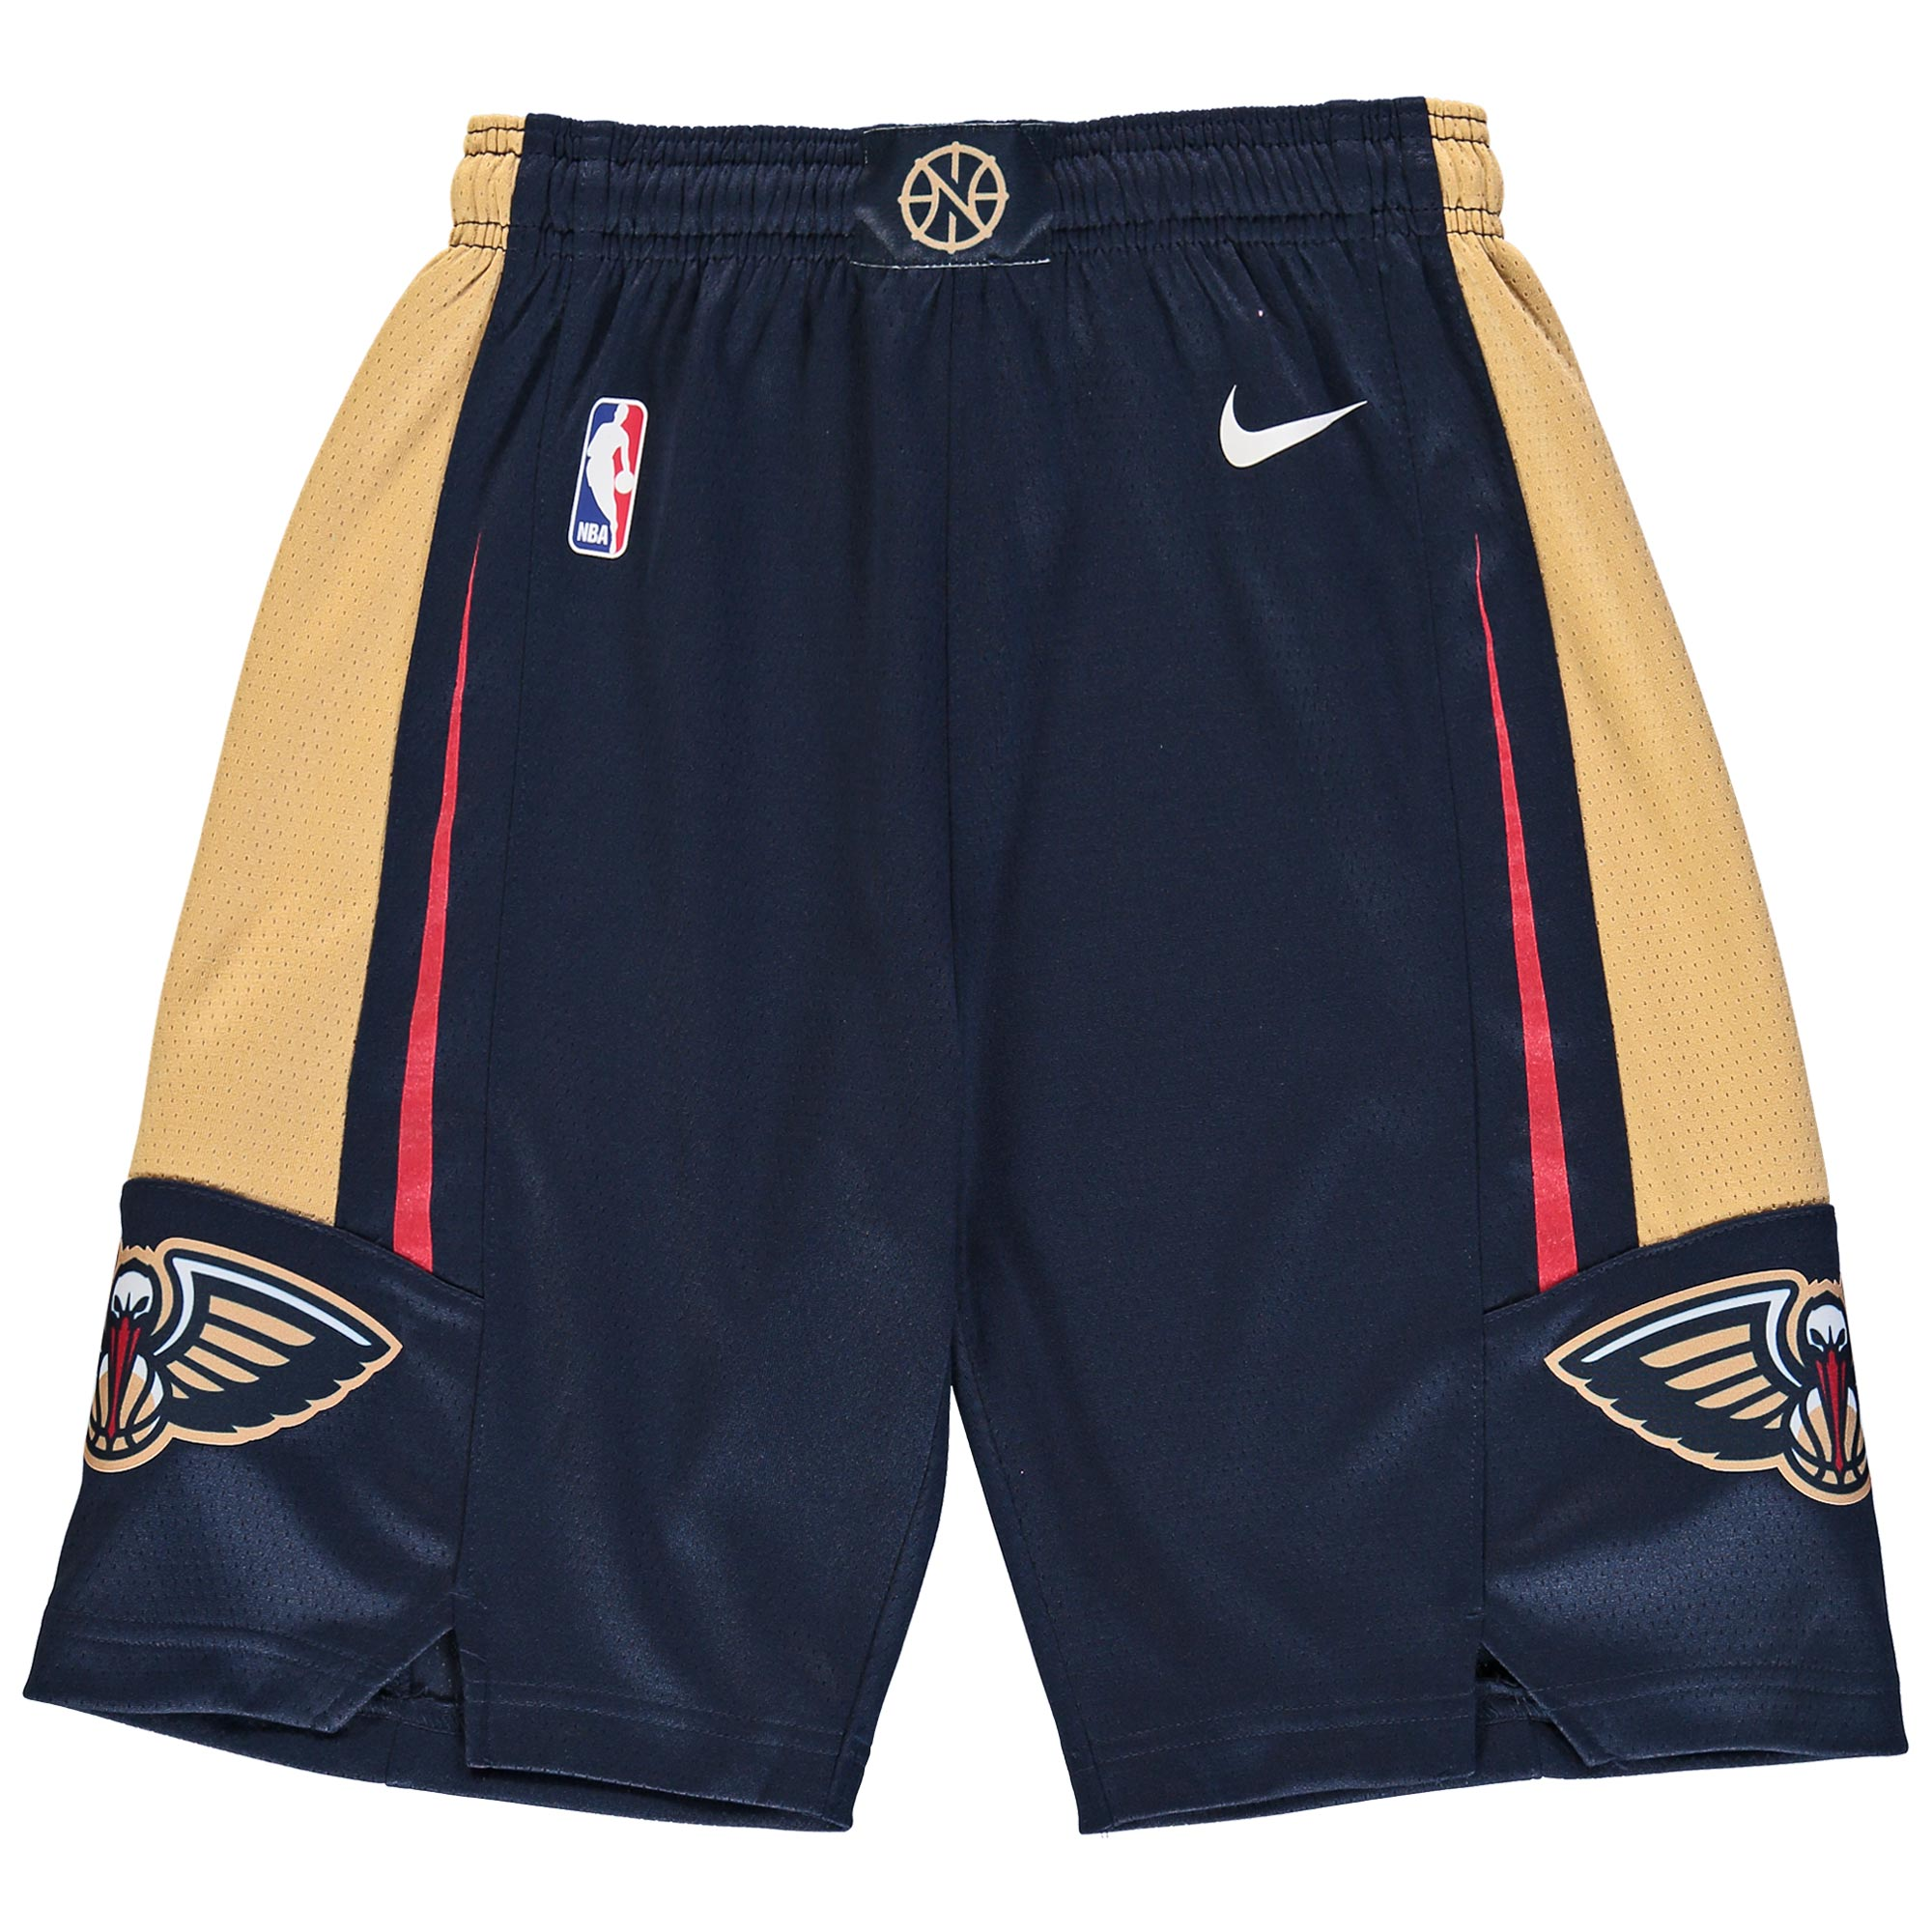 New Orleans Pelicans Nike Youth Swingman Icon Performance Shorts - Navy/Gold